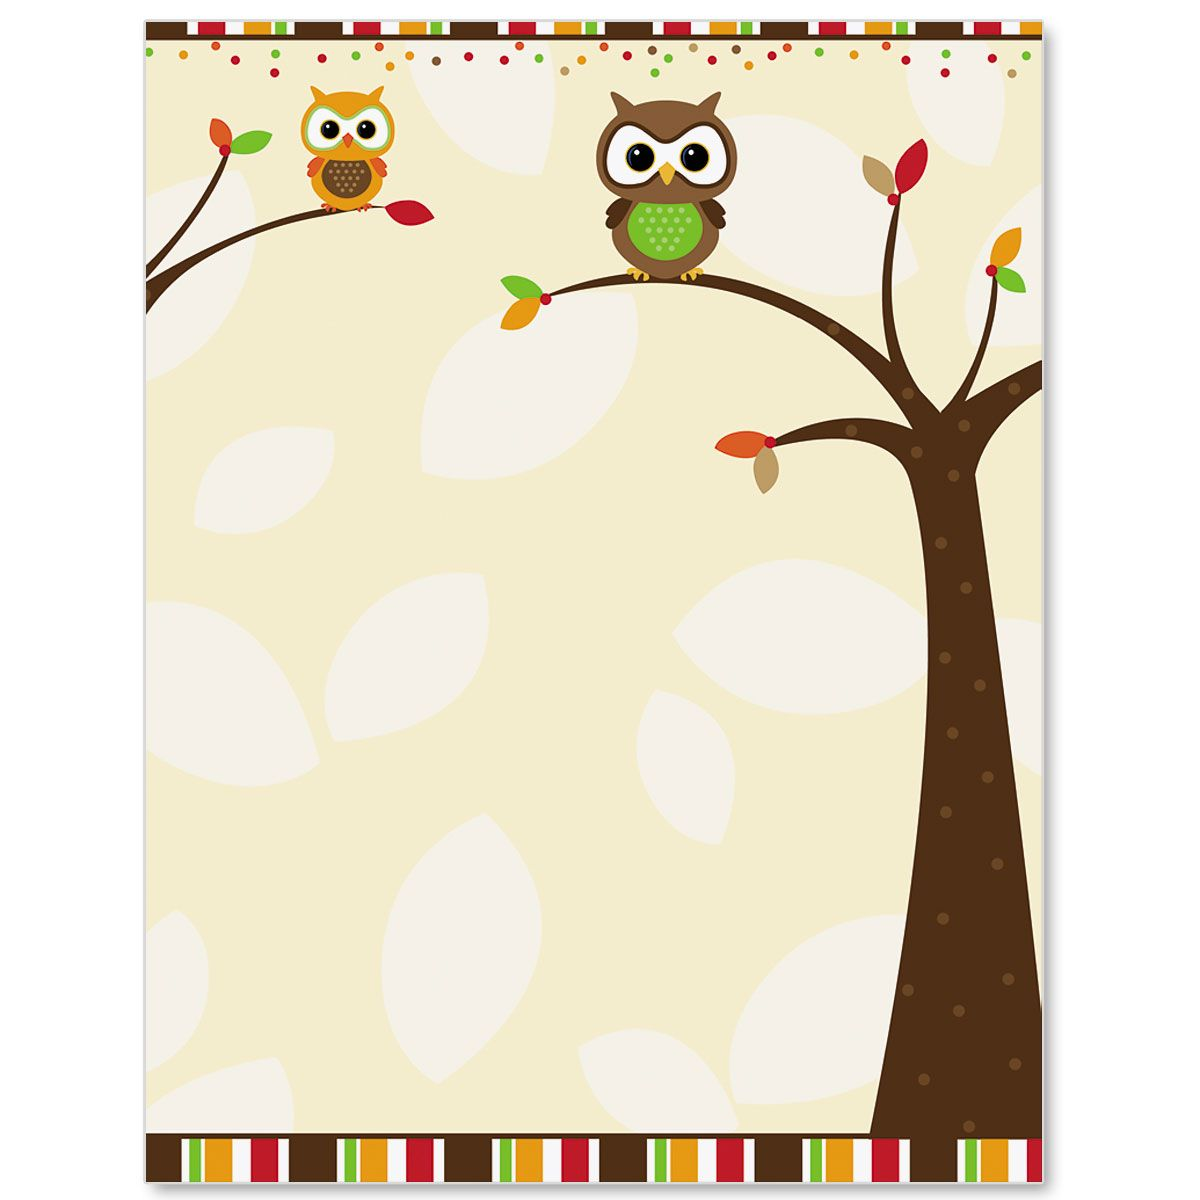 Autumn Owl Border Papers Borders For Paper Clip Art Borders Page Borders Design